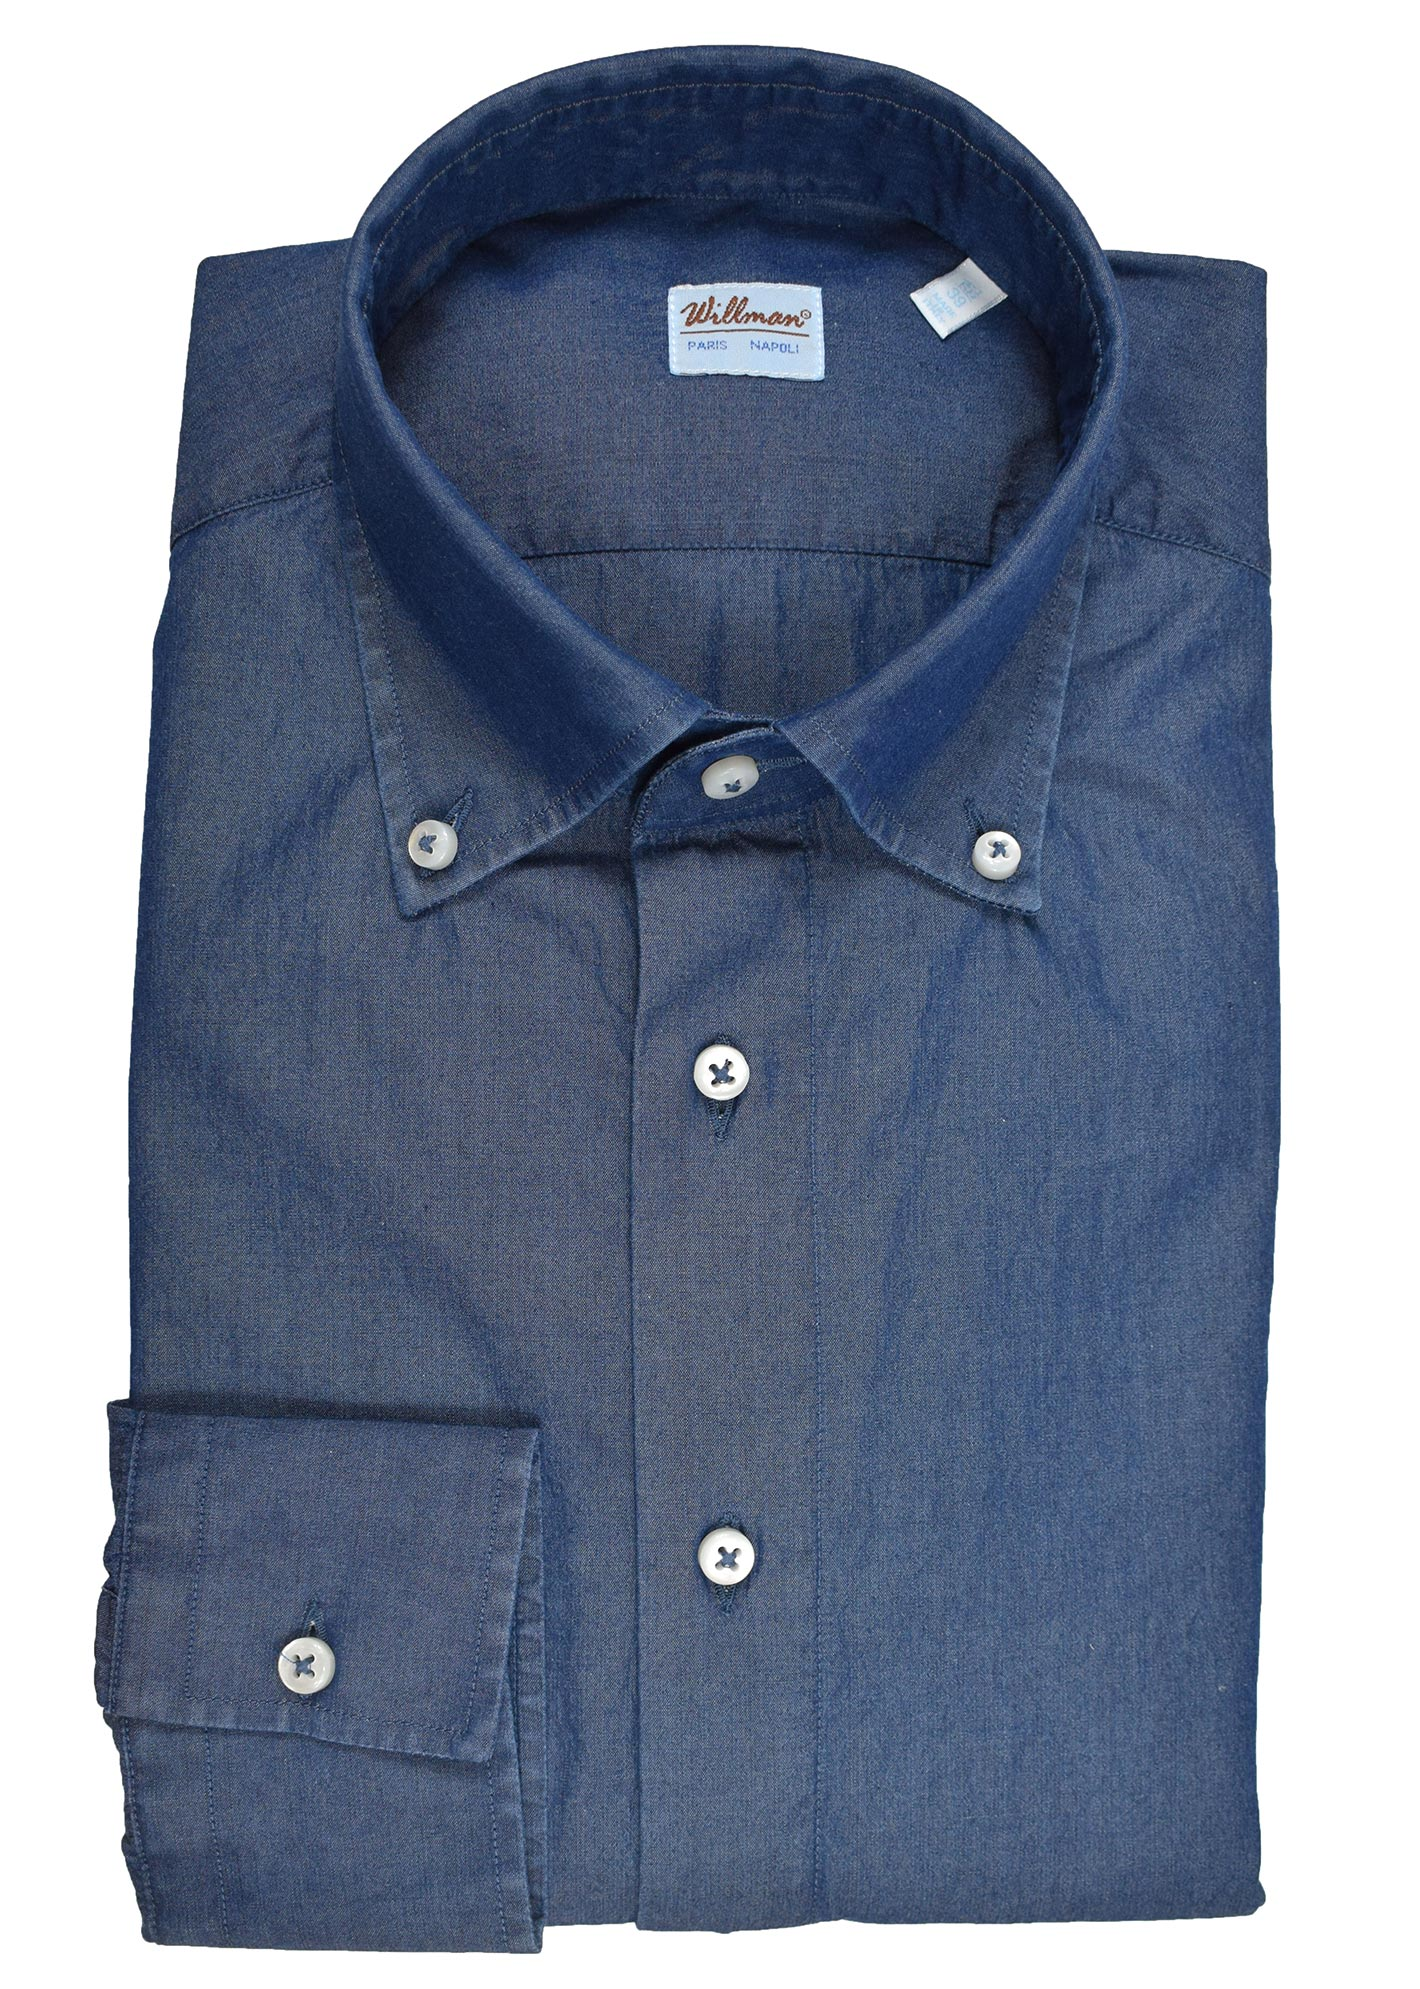 24WCH - Chemise coton chambray brute col boutonné